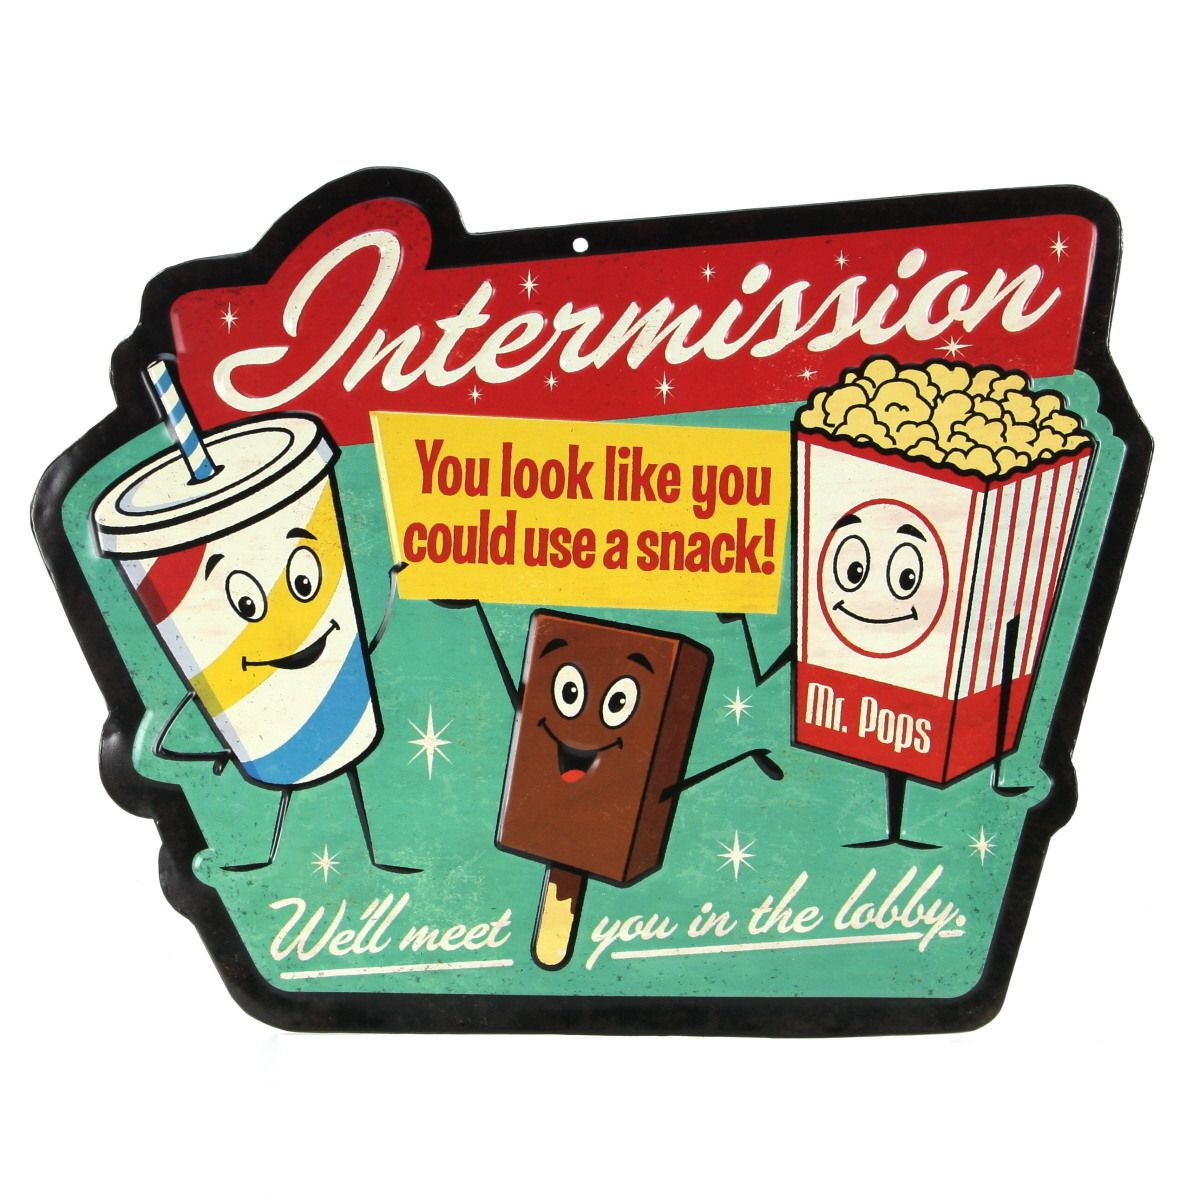 Theater Room Snack Bar: Concession Stand/bar